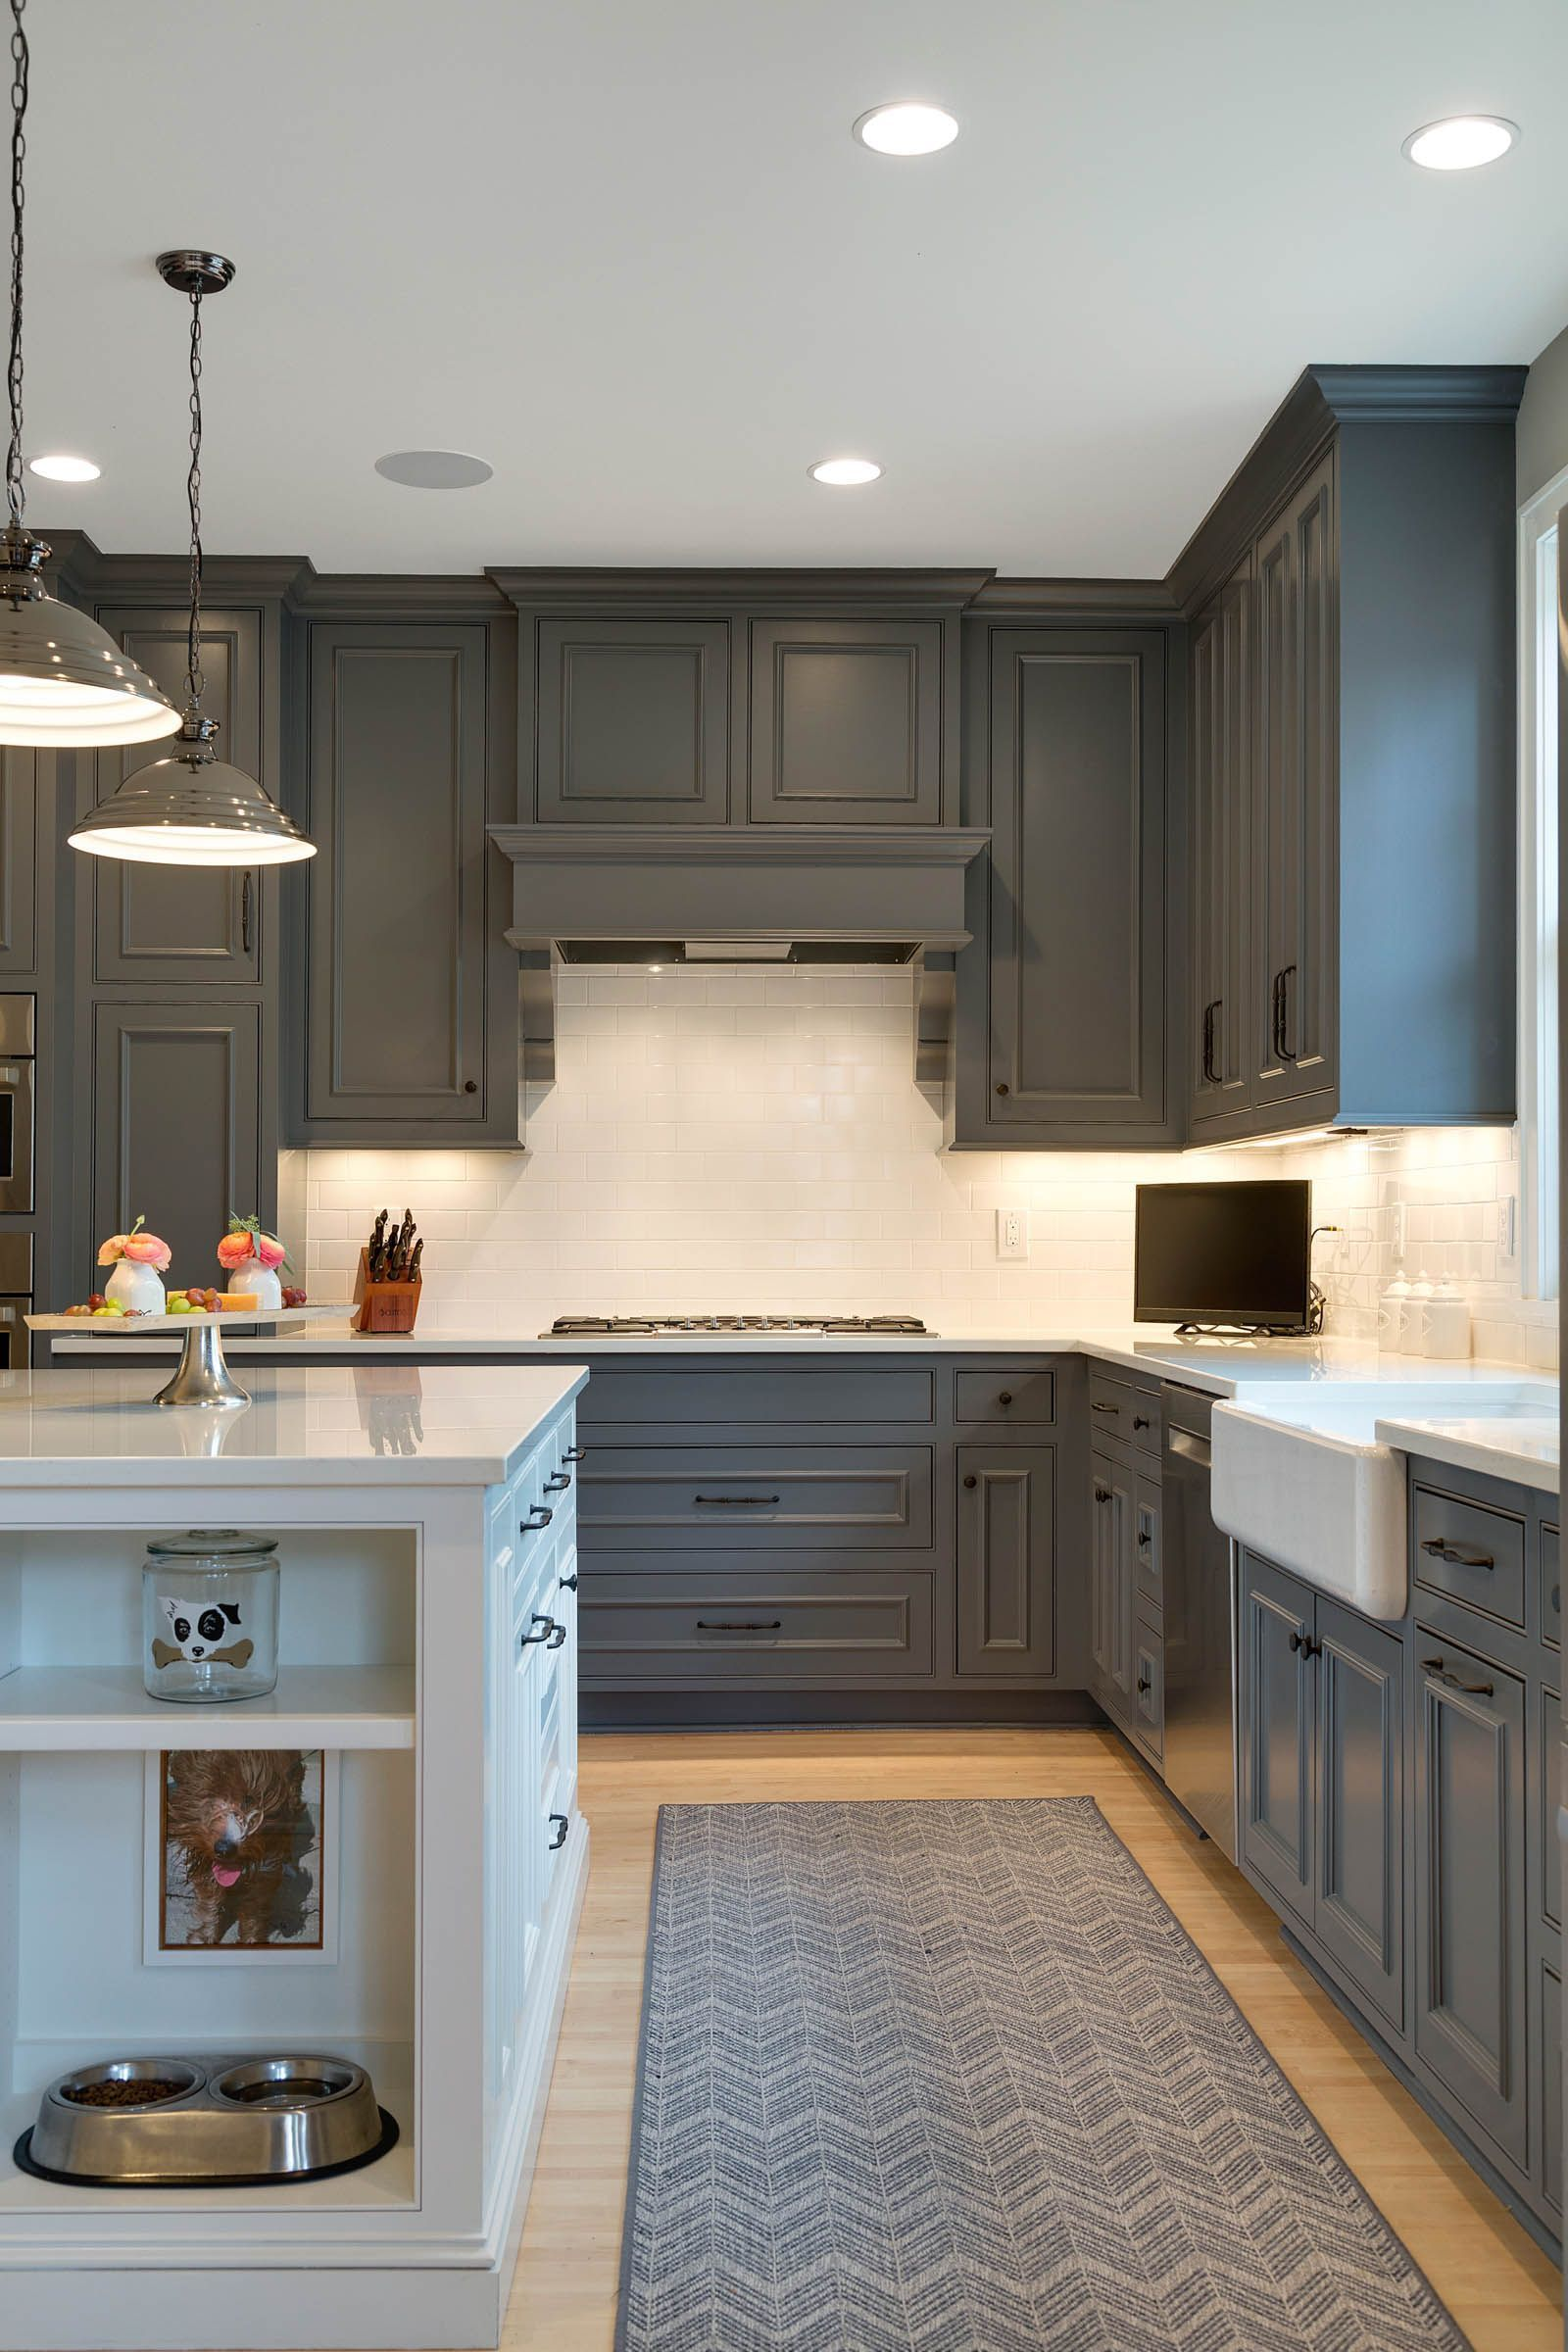 Kitchen Cabinet Ideas Aiming To Upgrade Your Cooking Area Cupboards Browse Our Kitchen Remodel Small Painted Kitchen Cabinets Colors Kitchen Cabinet Colors